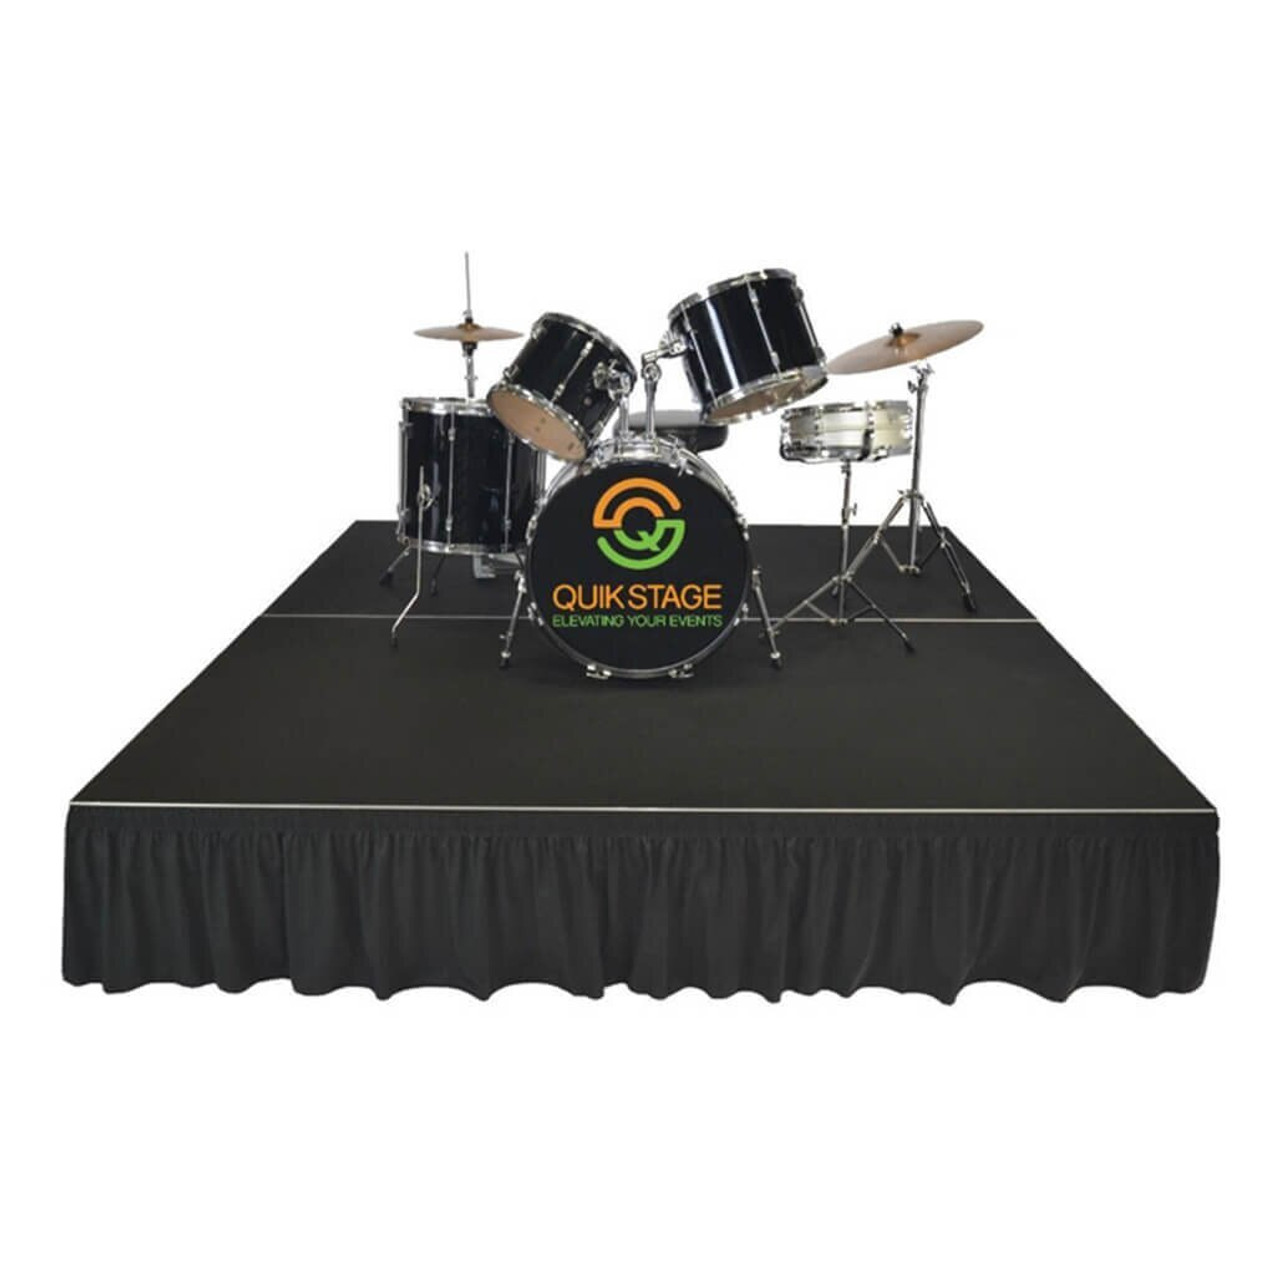 Top reviewed Quik Stage 8' x 8' High Portable Stage Package with Black Polyvinyl Non-Skid Surface. Additional Heights and Surfaces Available. - Drum Riser with skirting.